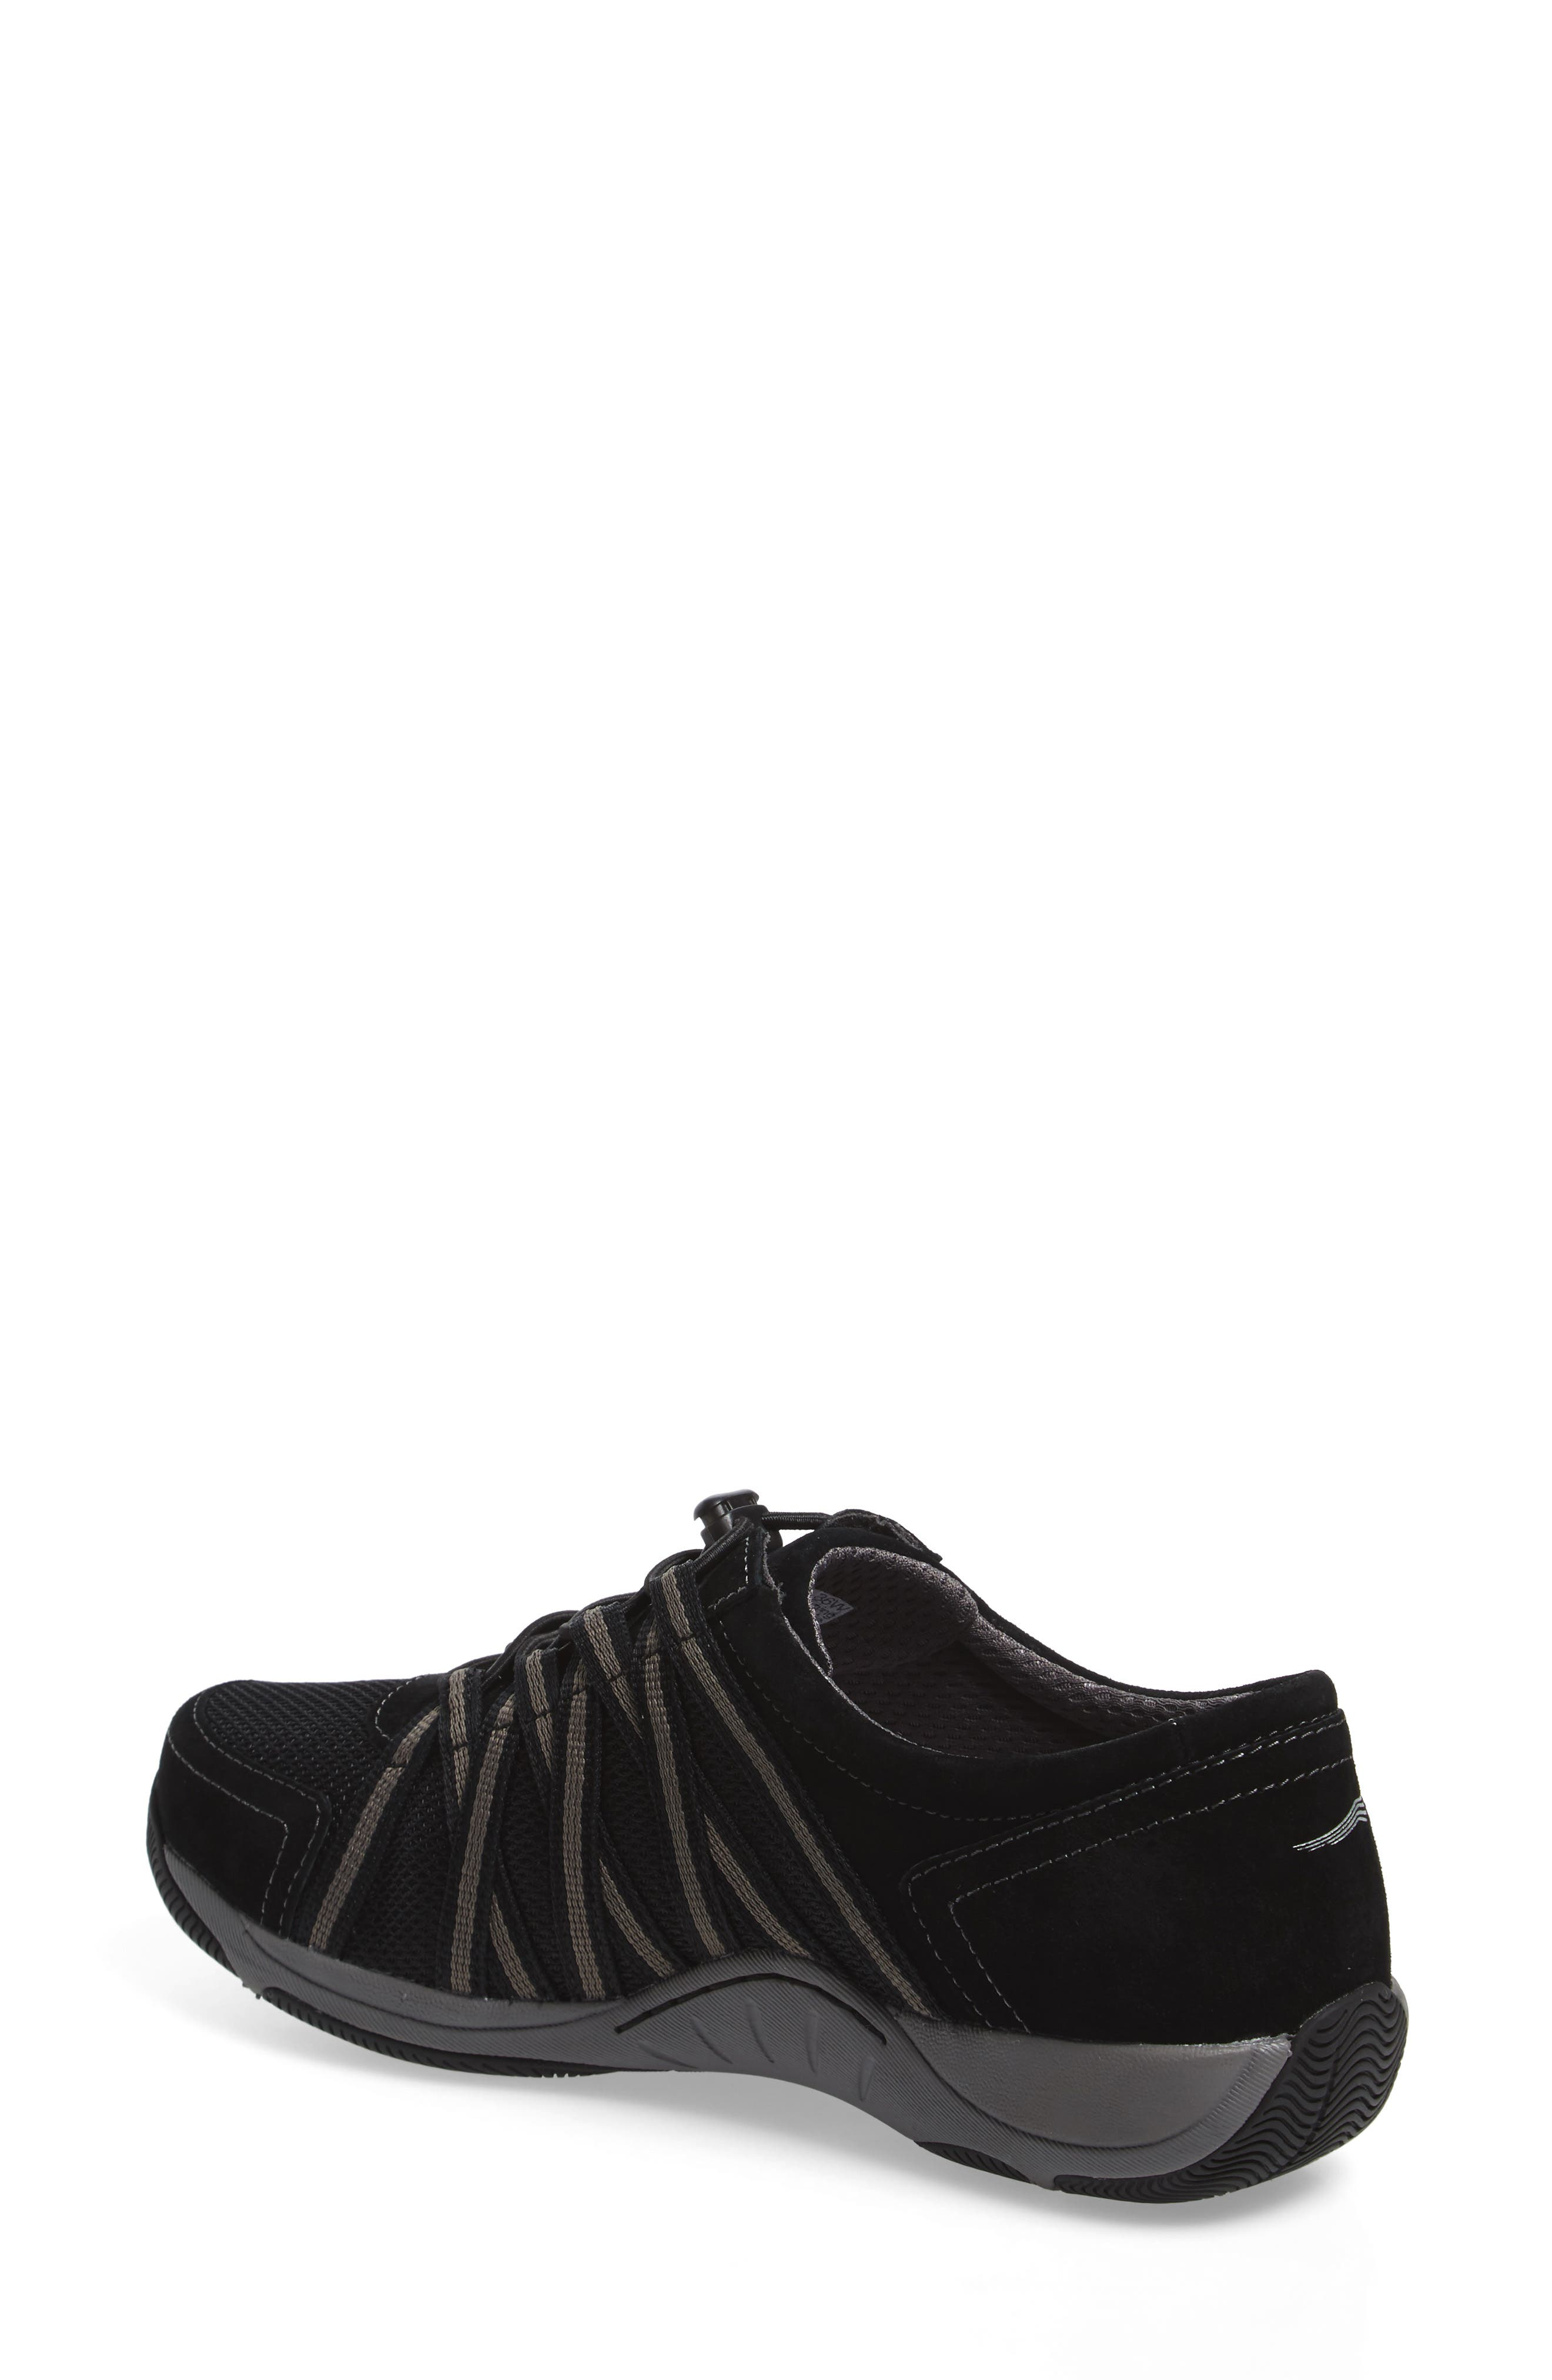 Halifax Collection Honor Sneaker,                             Alternate thumbnail 2, color,                             BLACK/ BLACK SUEDE